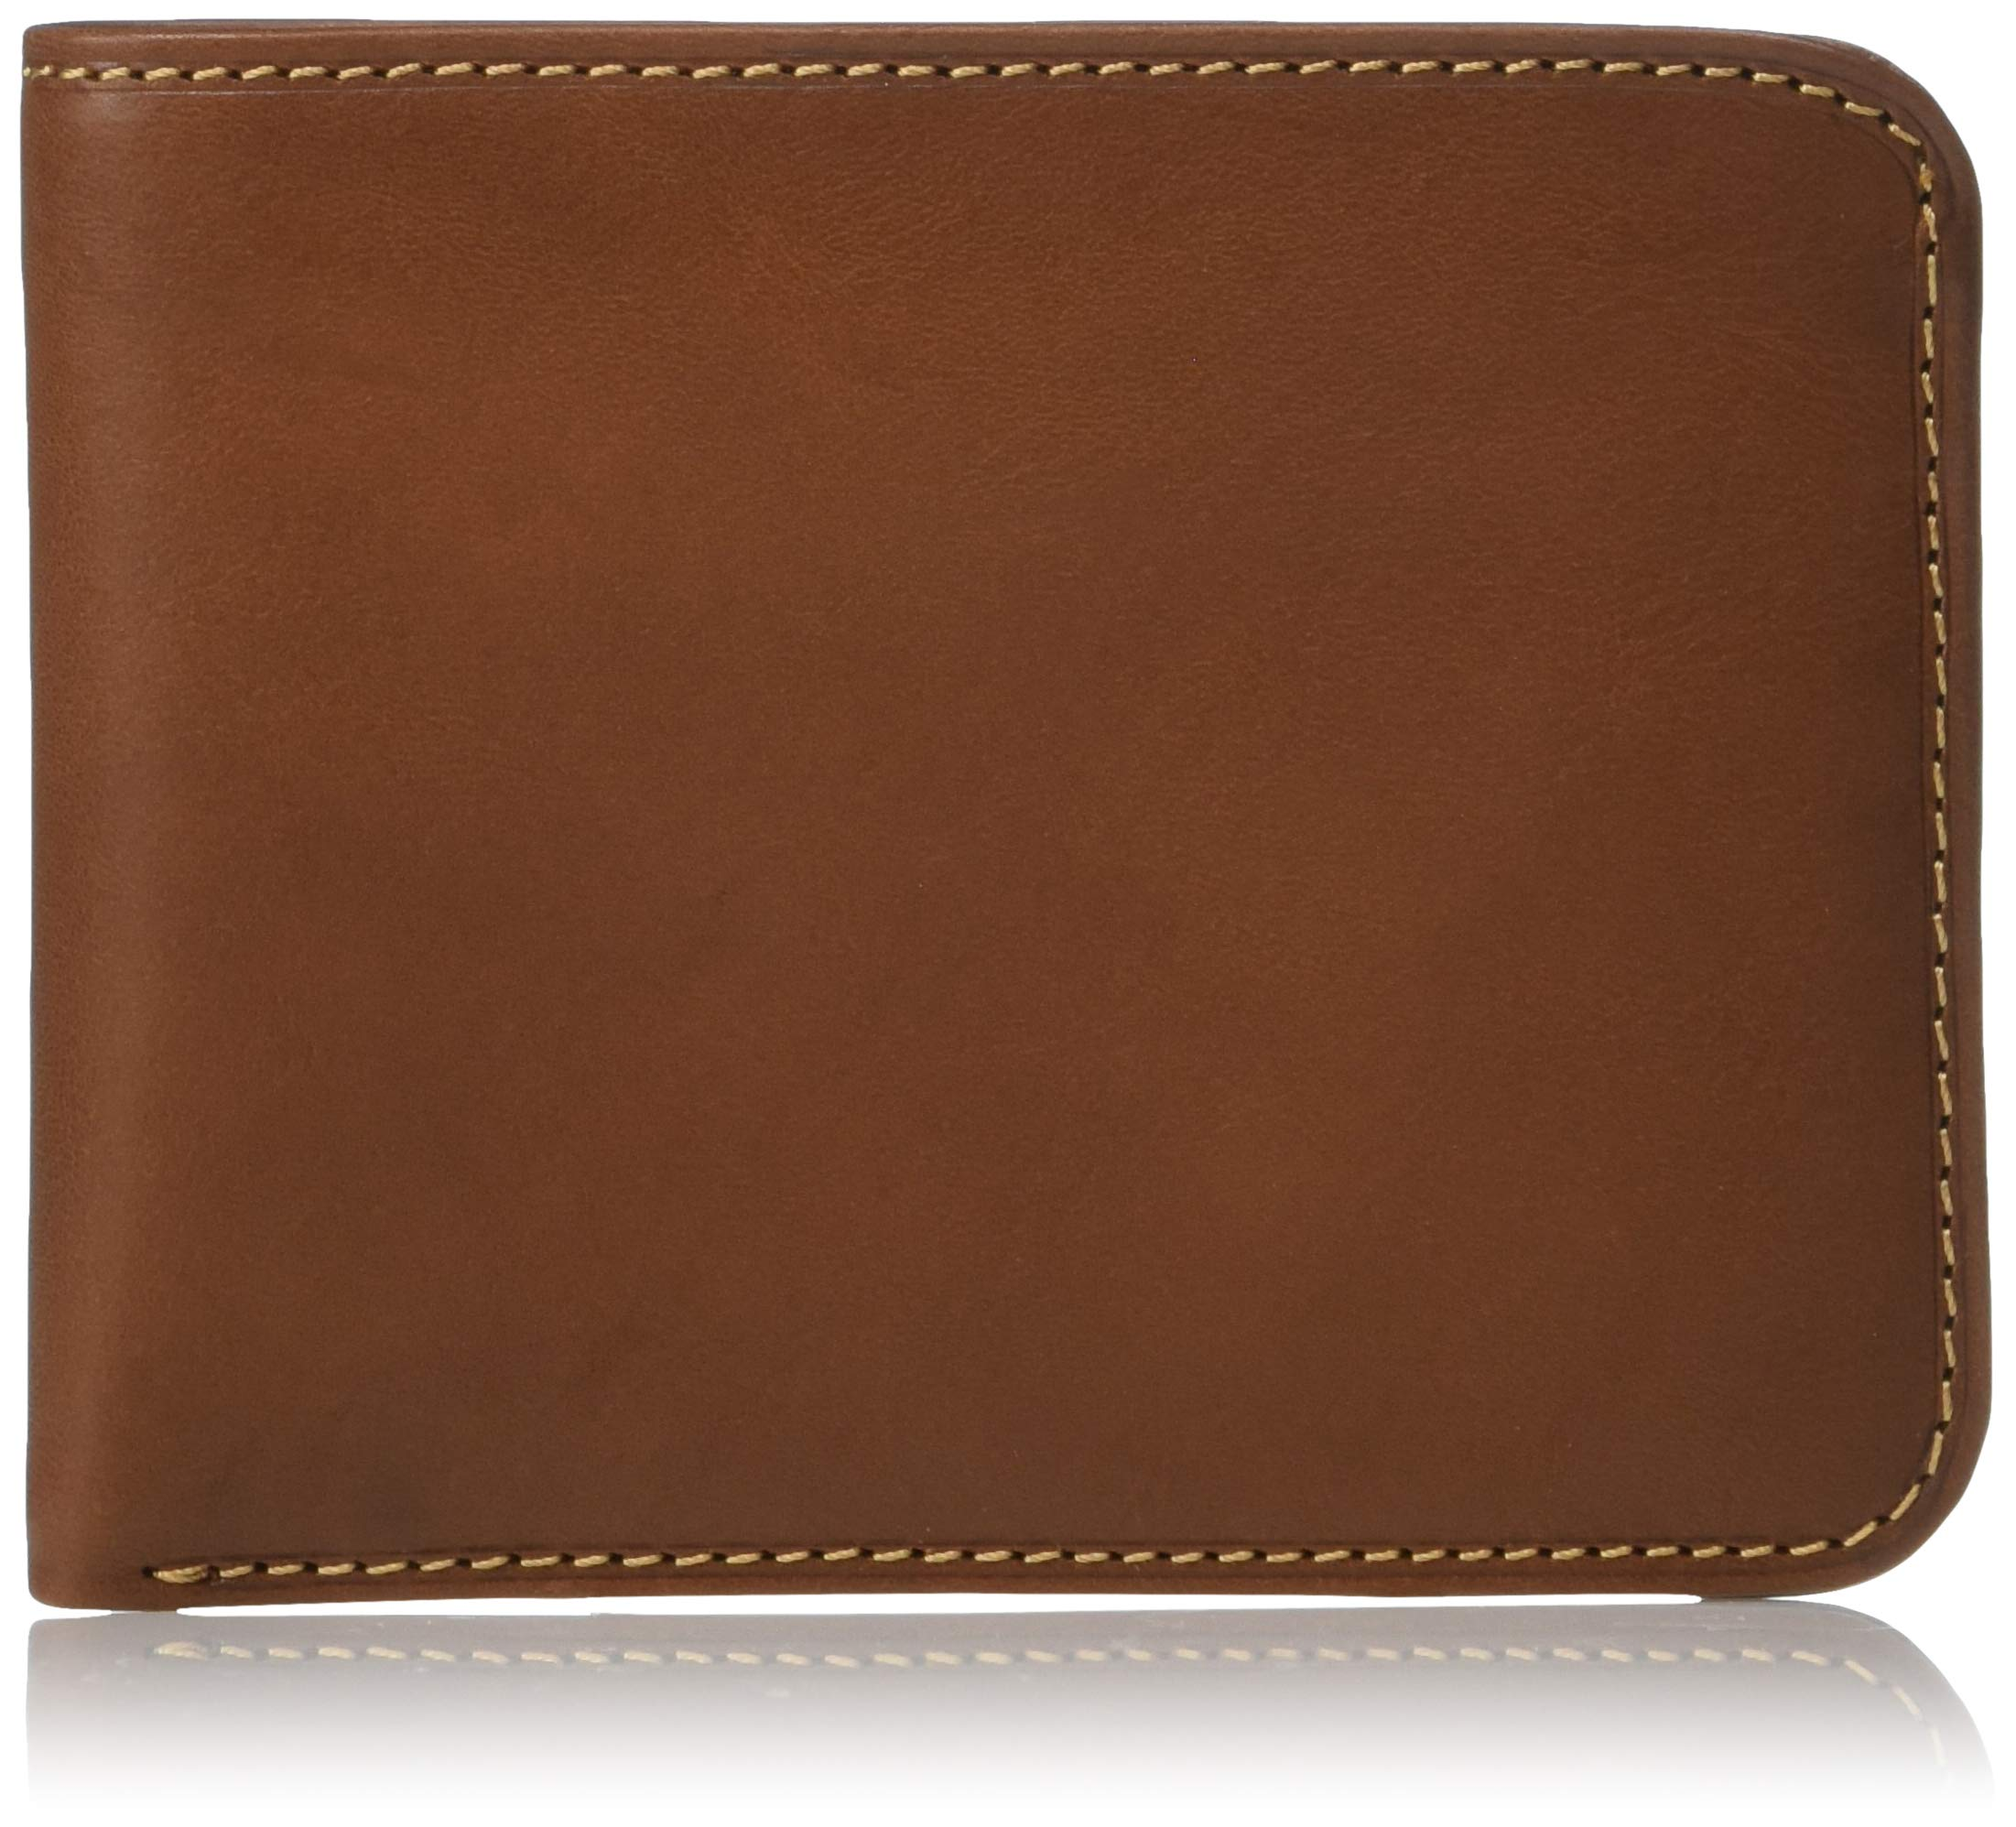 Mens Classic Bifold Wallet Double Bill Pocket Credit Card Holder Italian Leather by Tony Perotti